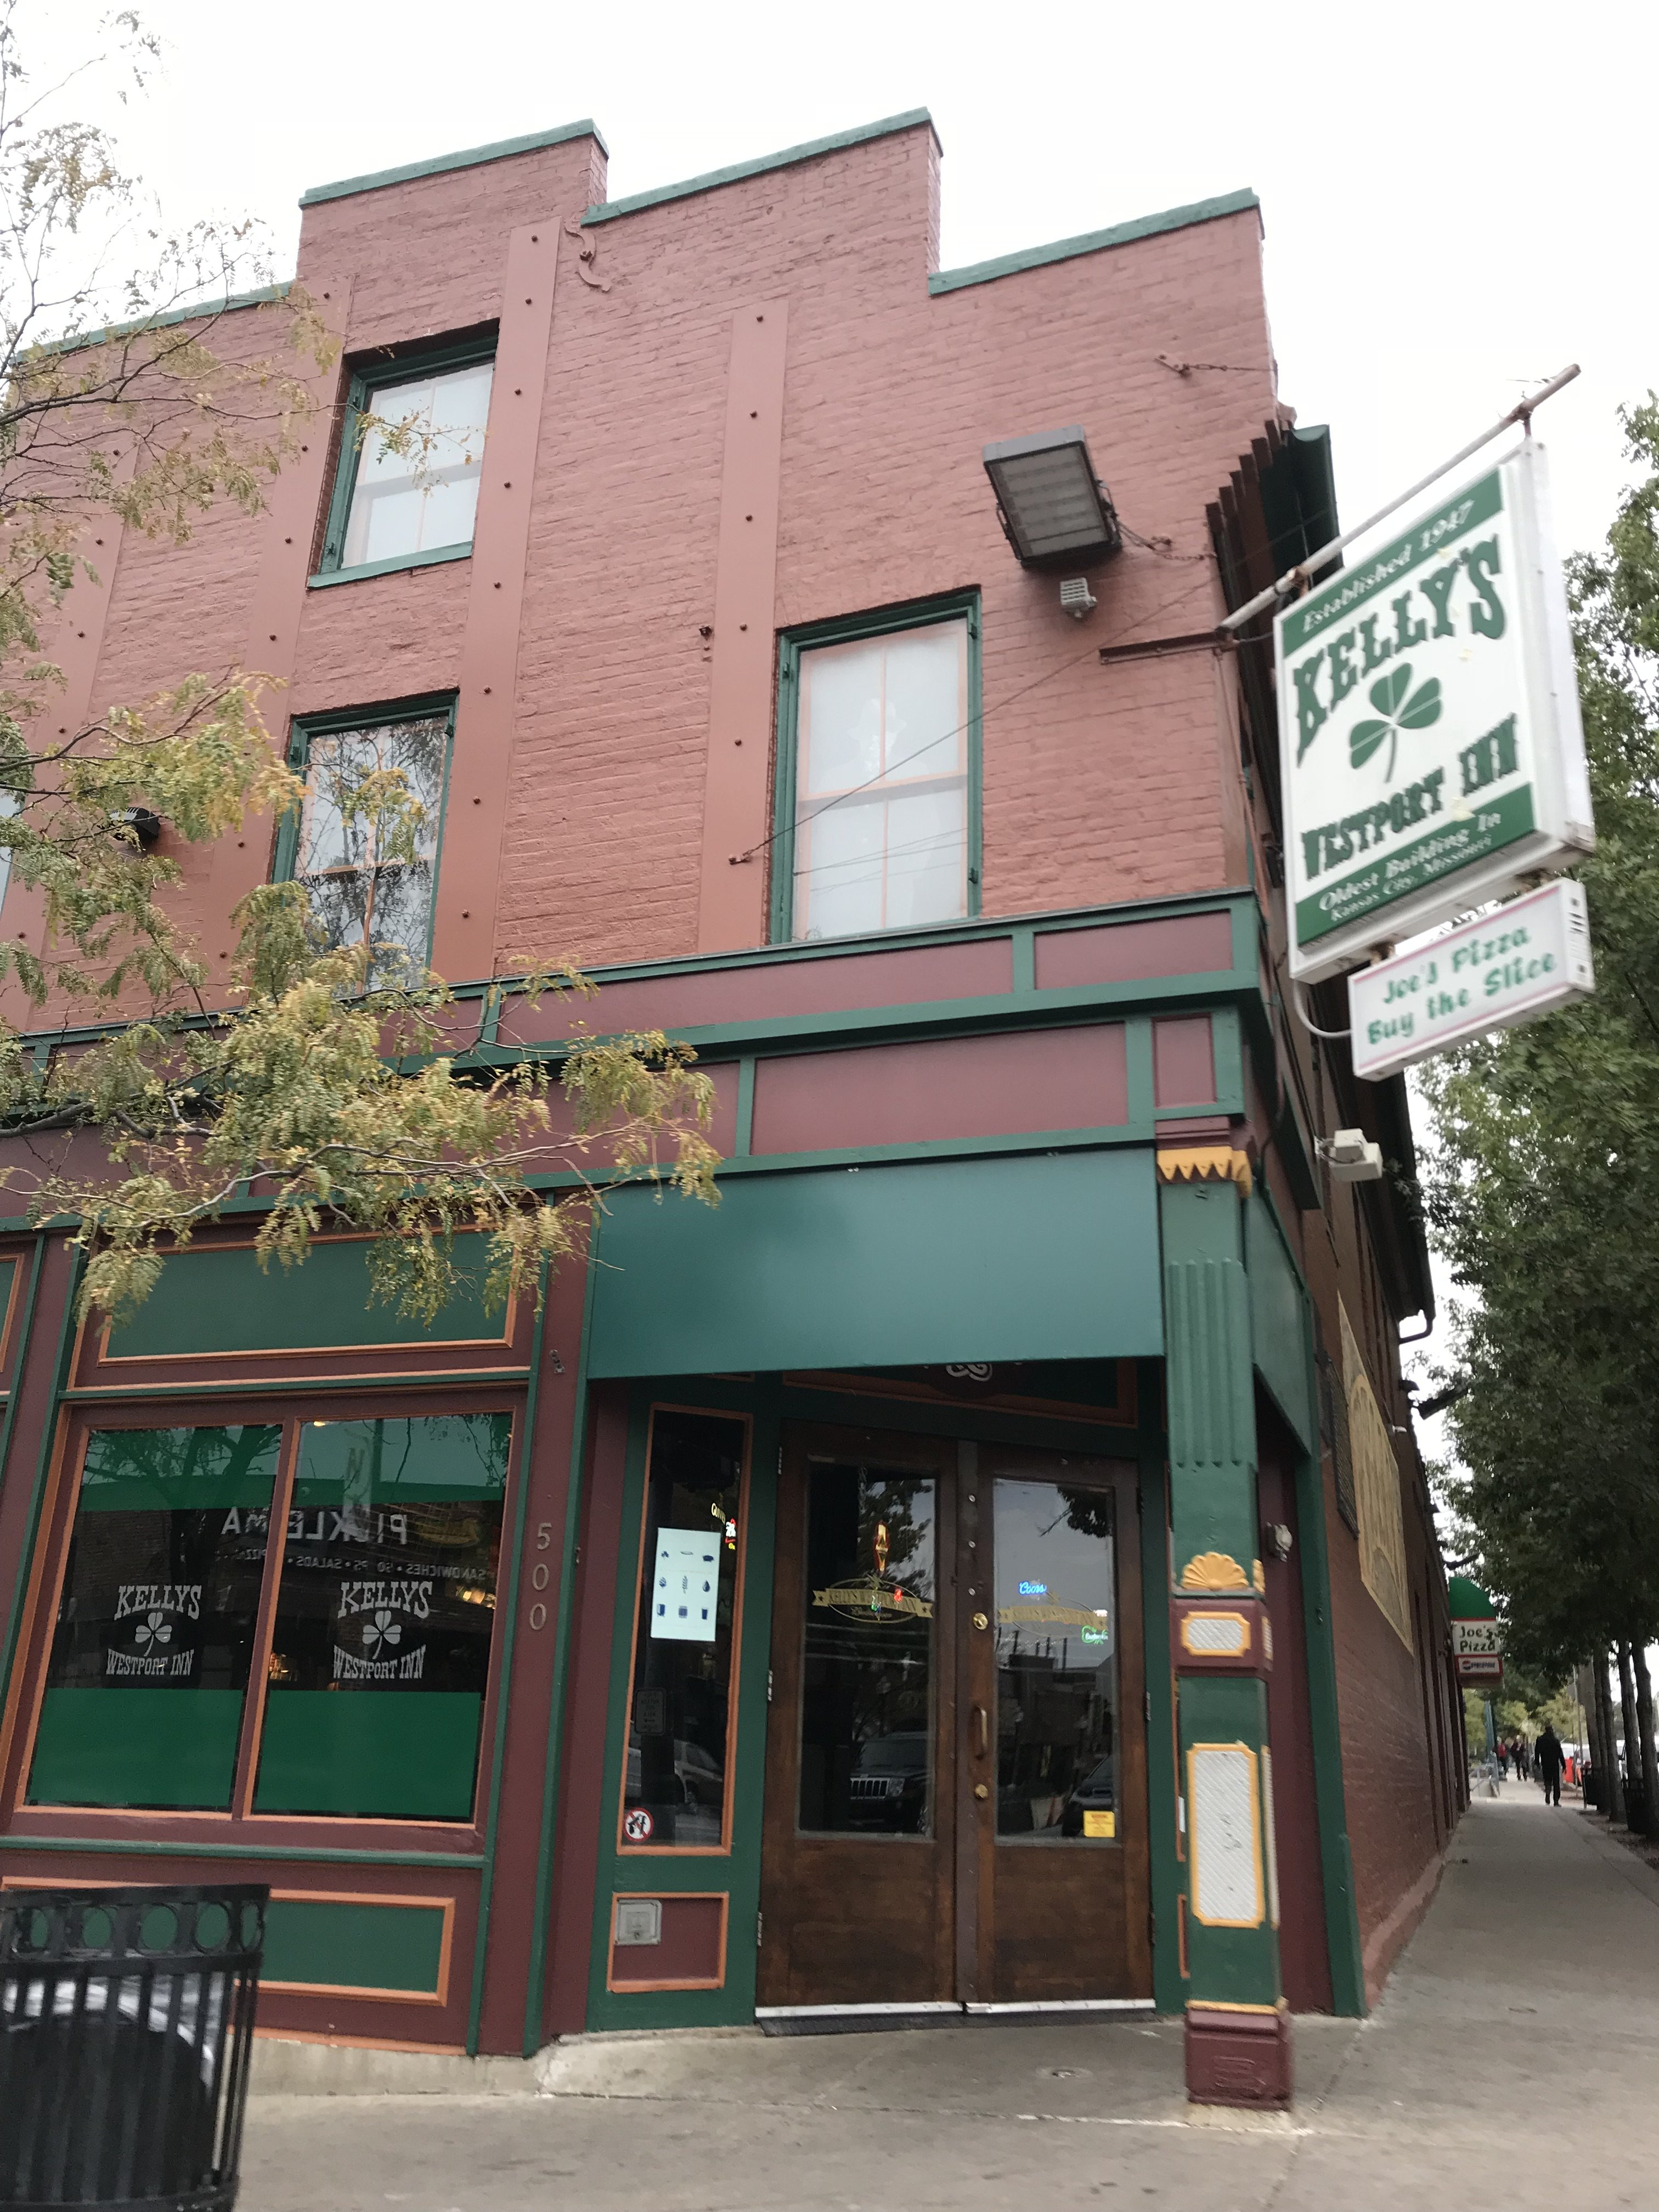 Home to the iconic Kansas City establishment Kelly's Westport Inn, this historic building is connected to the earliest days of the city and located near the National Trails System.